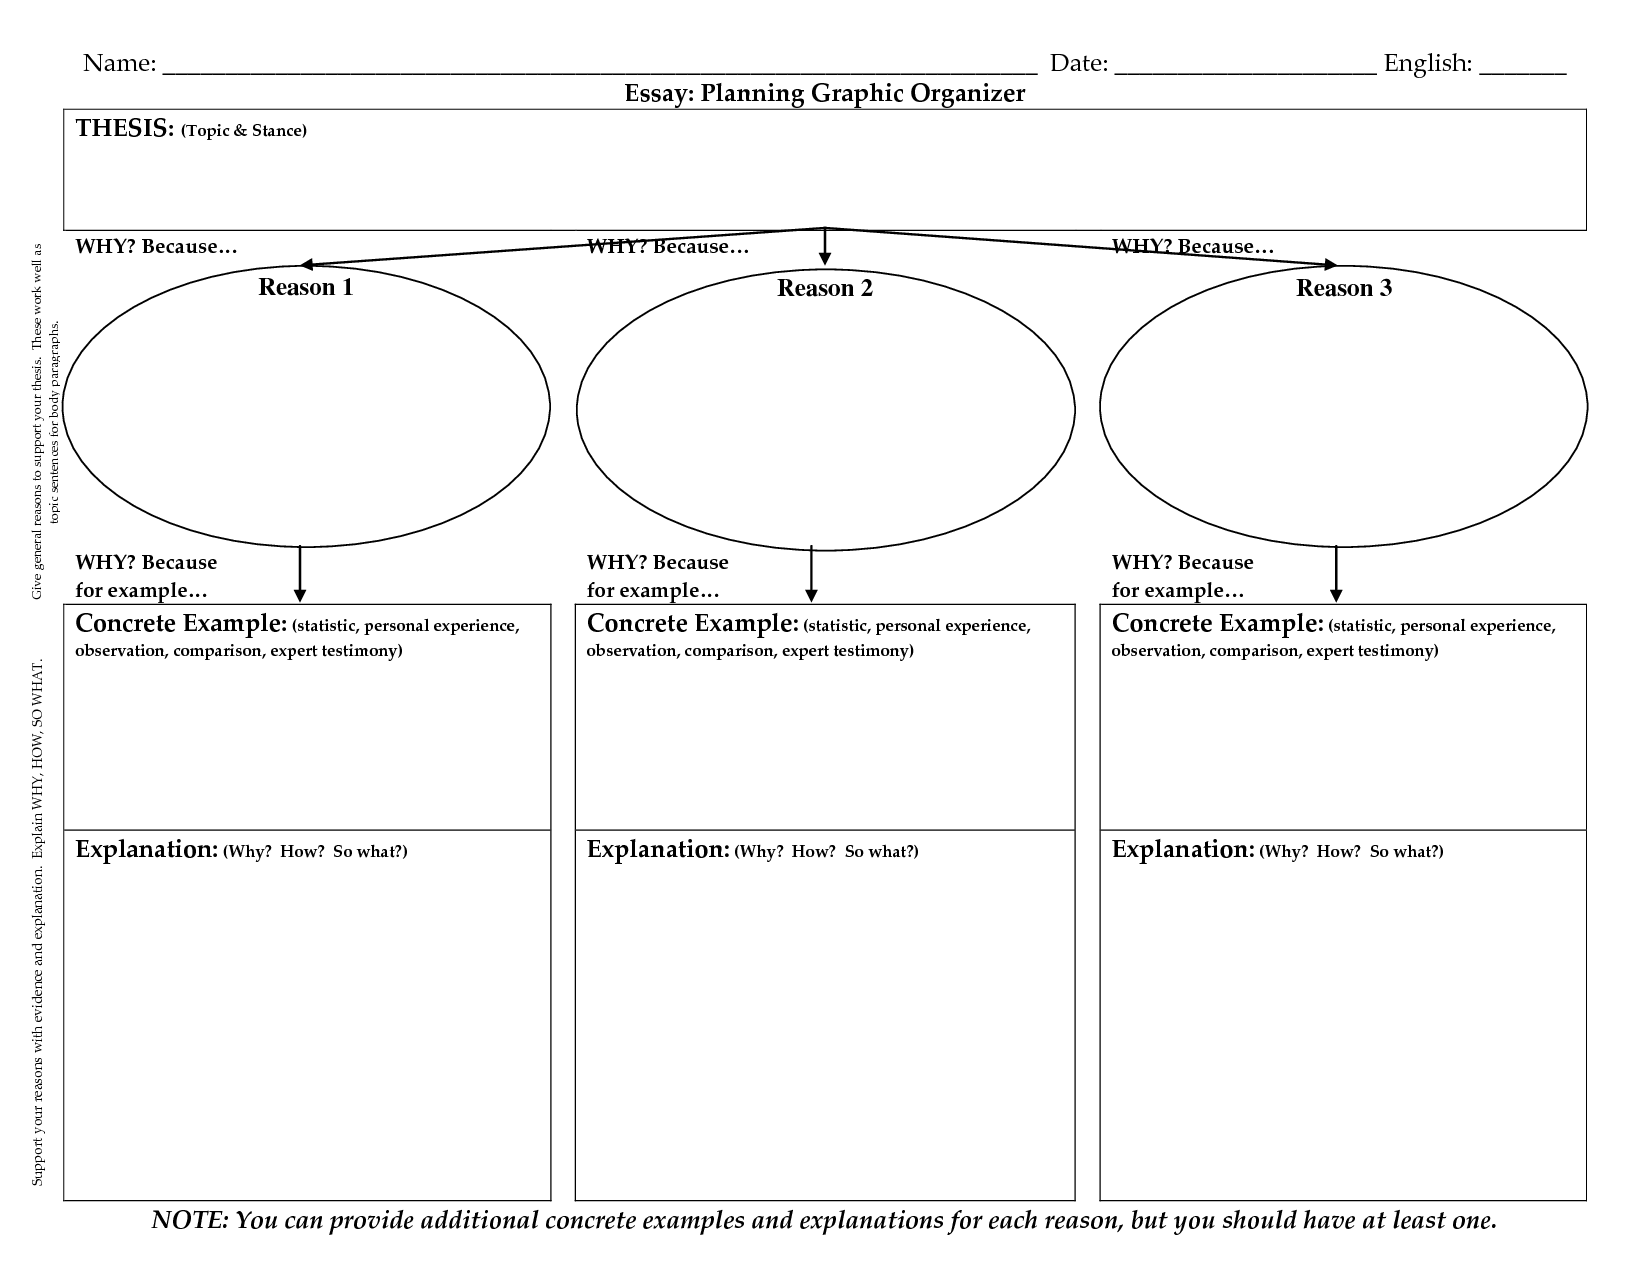 College research paper graphic organizer